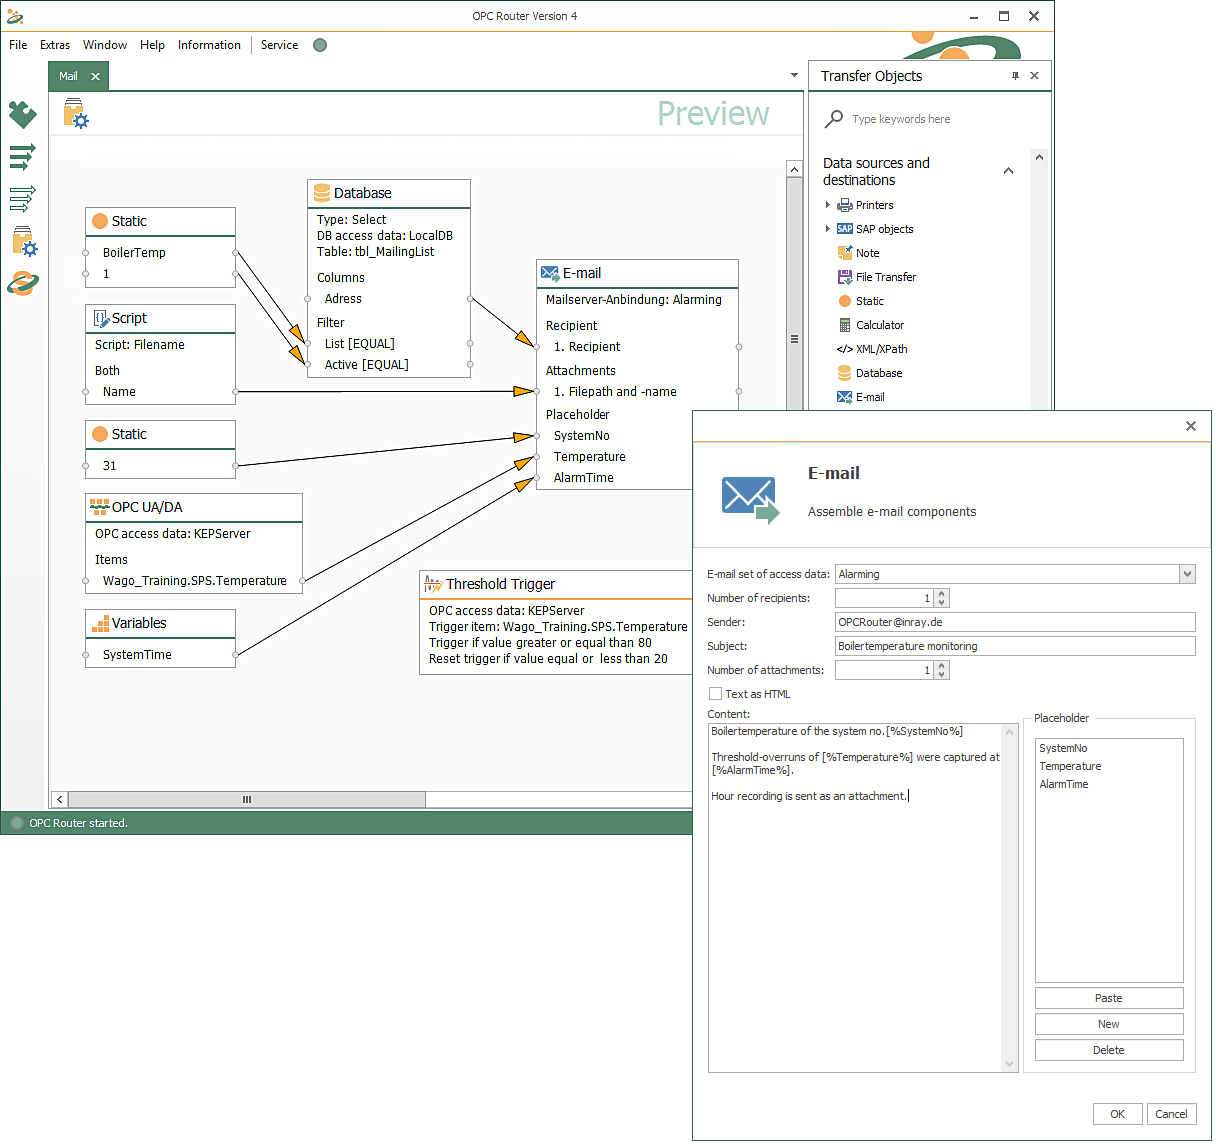 In this example, data is loaded from OPC UA with the OPC UA Client Plug-in and from a Microsoft SQL database with the Microsoft SQL Plug-in. They are supplemented by variables, constants and a file as an attachment. The file for the attachment is loaded with the script function from the OPC Router Basic Plug-in. All data is finally written into the email template and the email for the alert is created. In this example, the email is sent when an OPC trigger is triggered, which checks the data point of a PLC for an alarm condition.